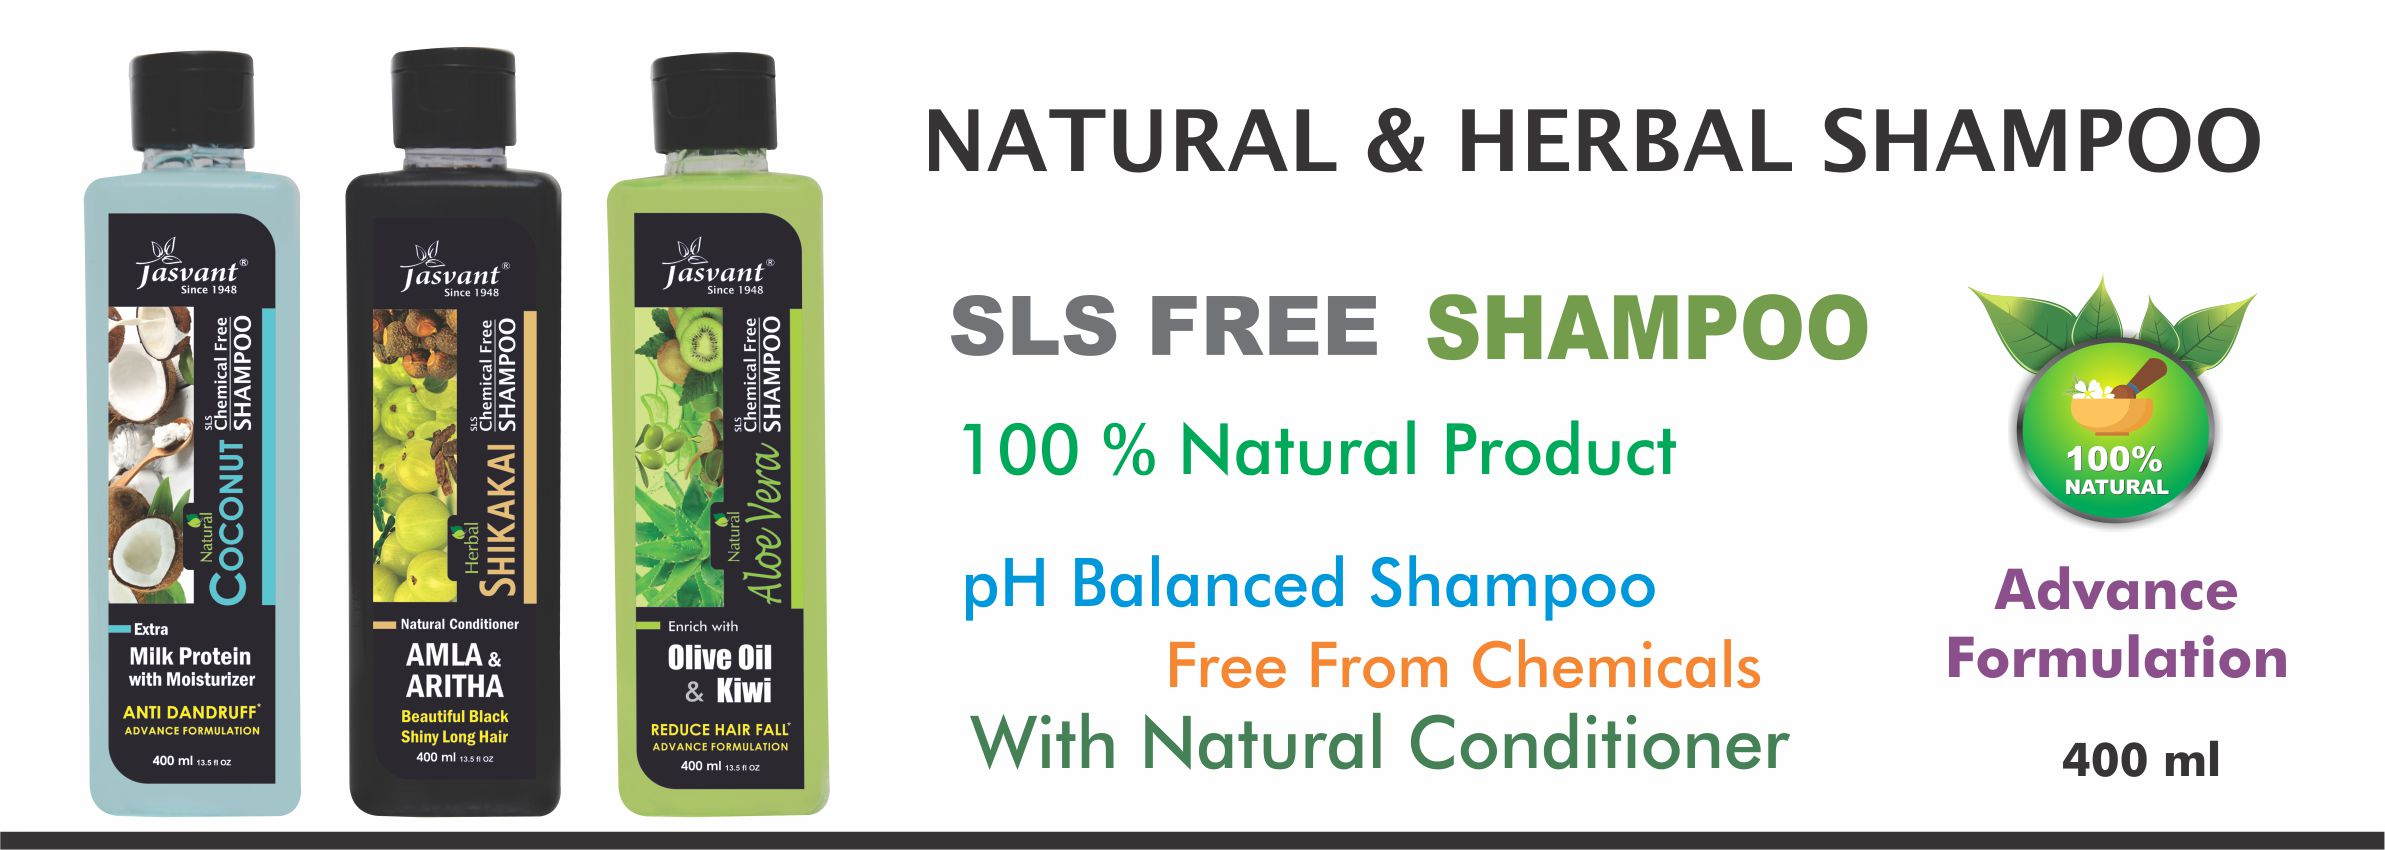 Natural & Herbal Chemical Free Shampoo